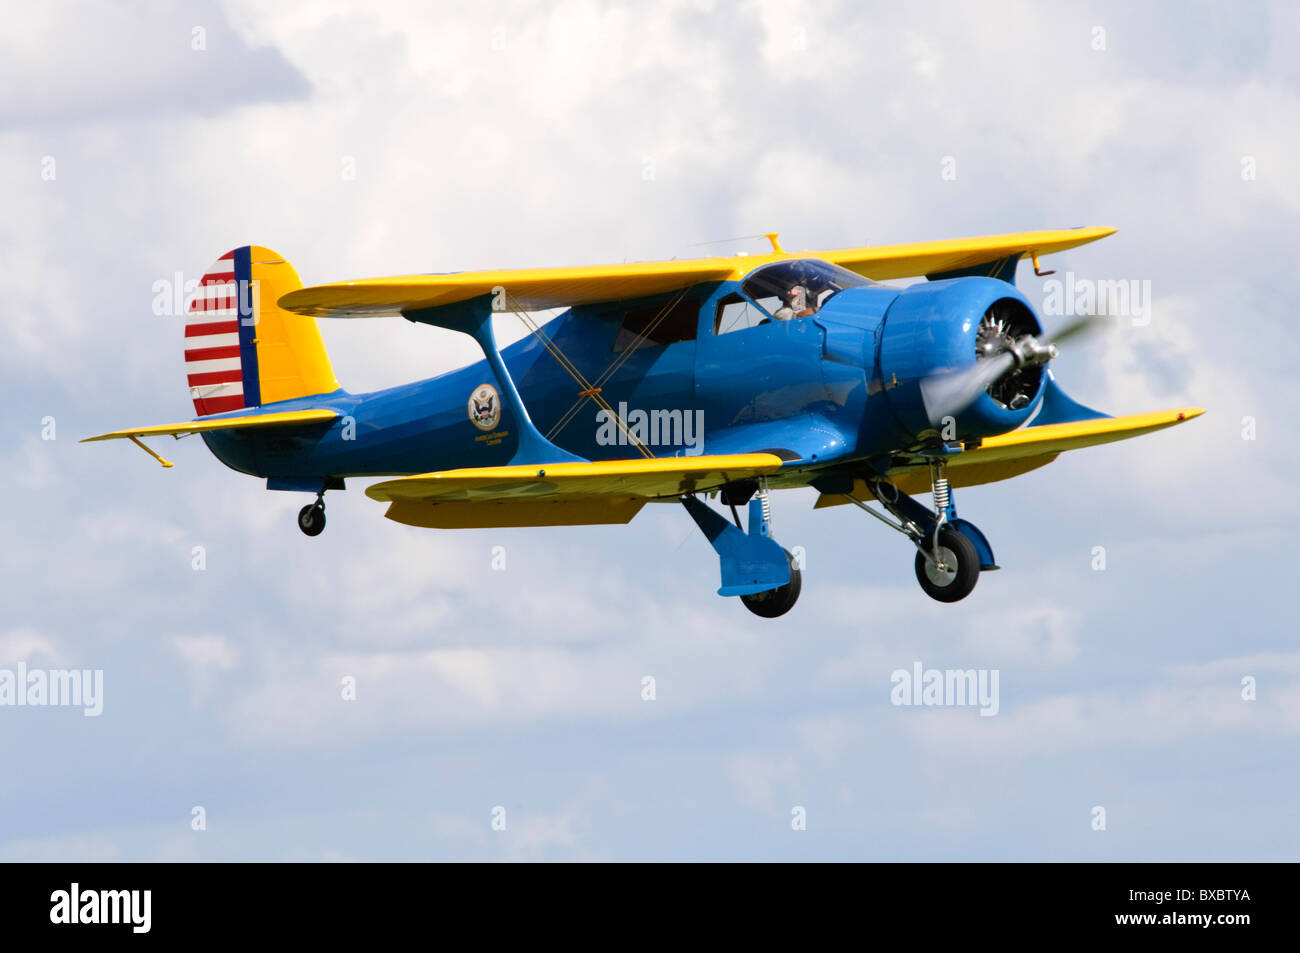 Beech YC-43 Traveller (Staggerwing) biplane making a flypast at Duxford Flying Legends Airshow - Stock Image